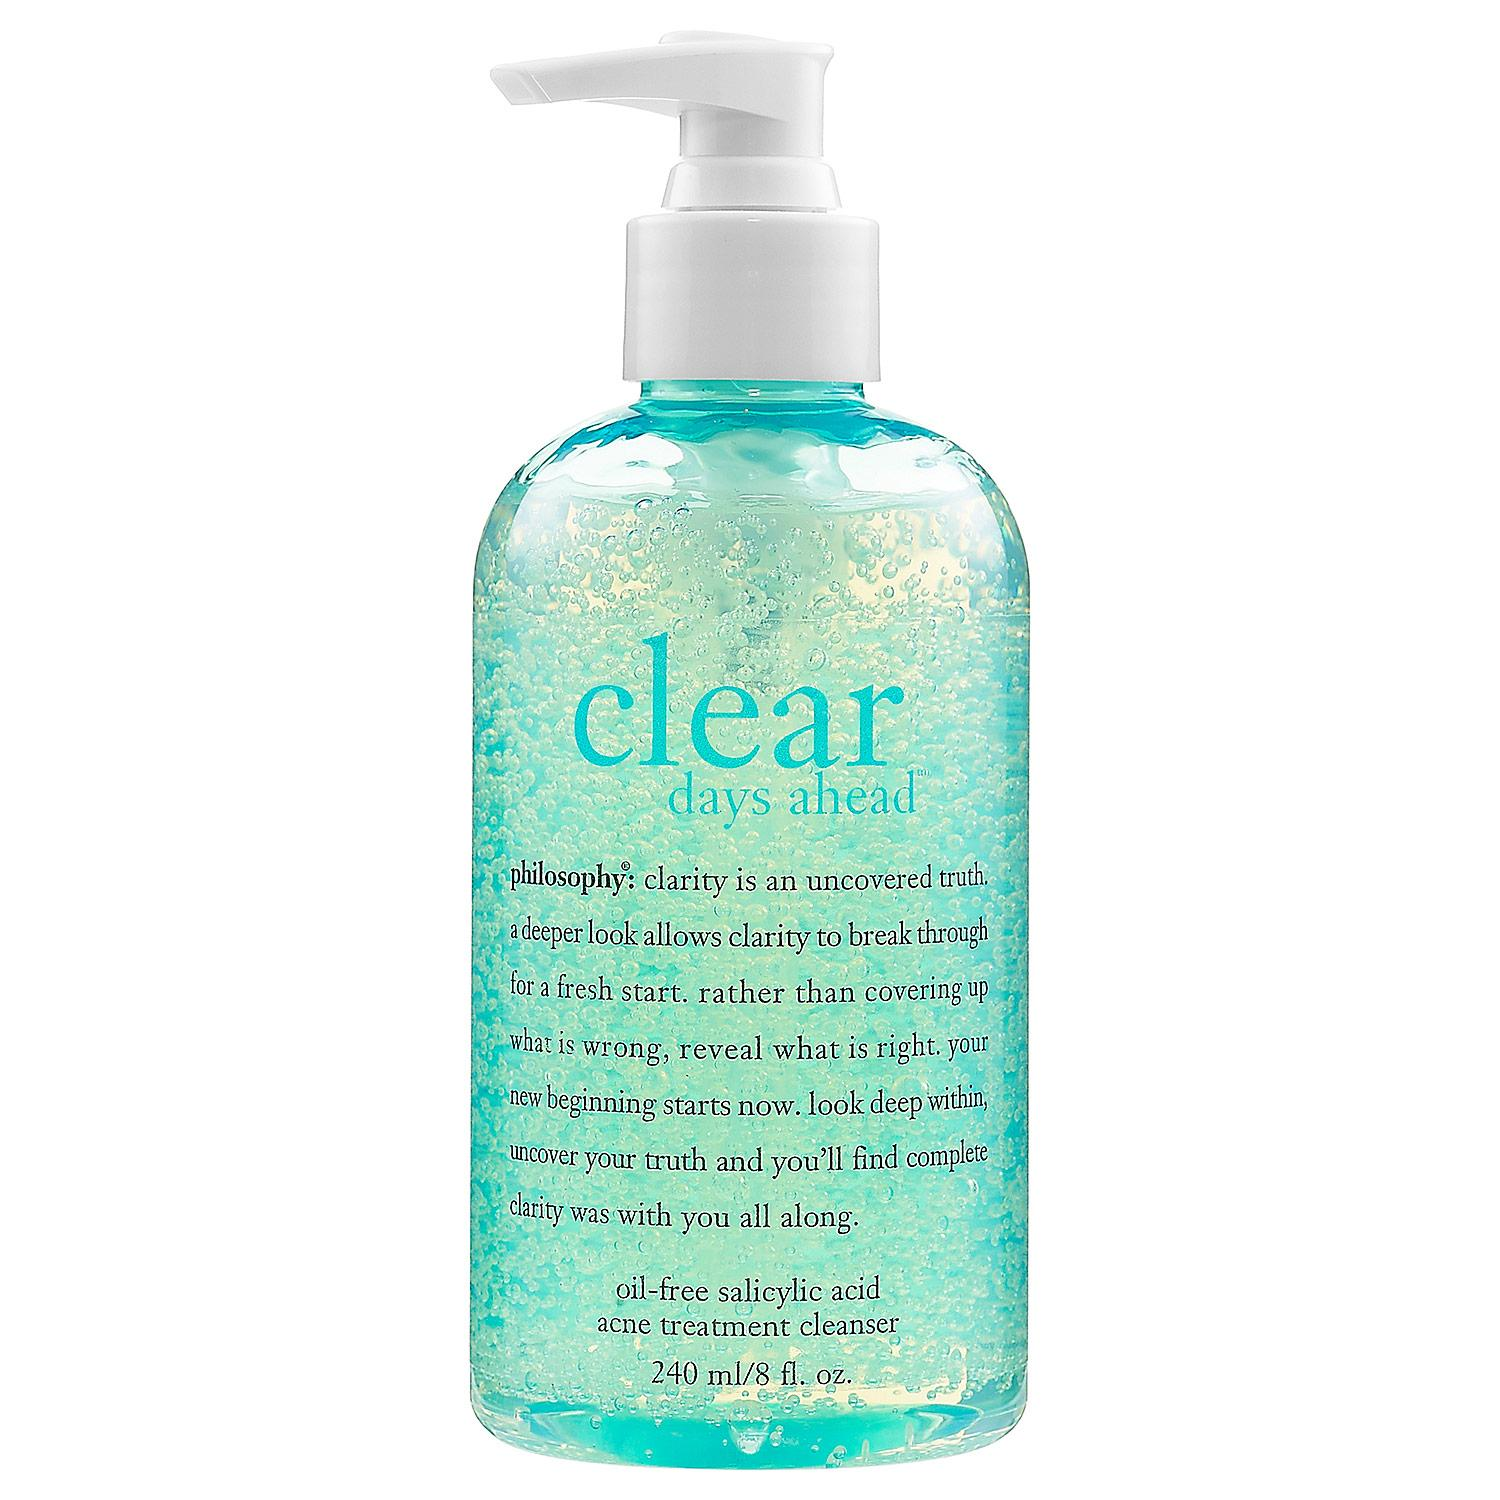 Clear Days Ahead™ Oil-Free Salicylic Acid Acne Treatment Cleanser